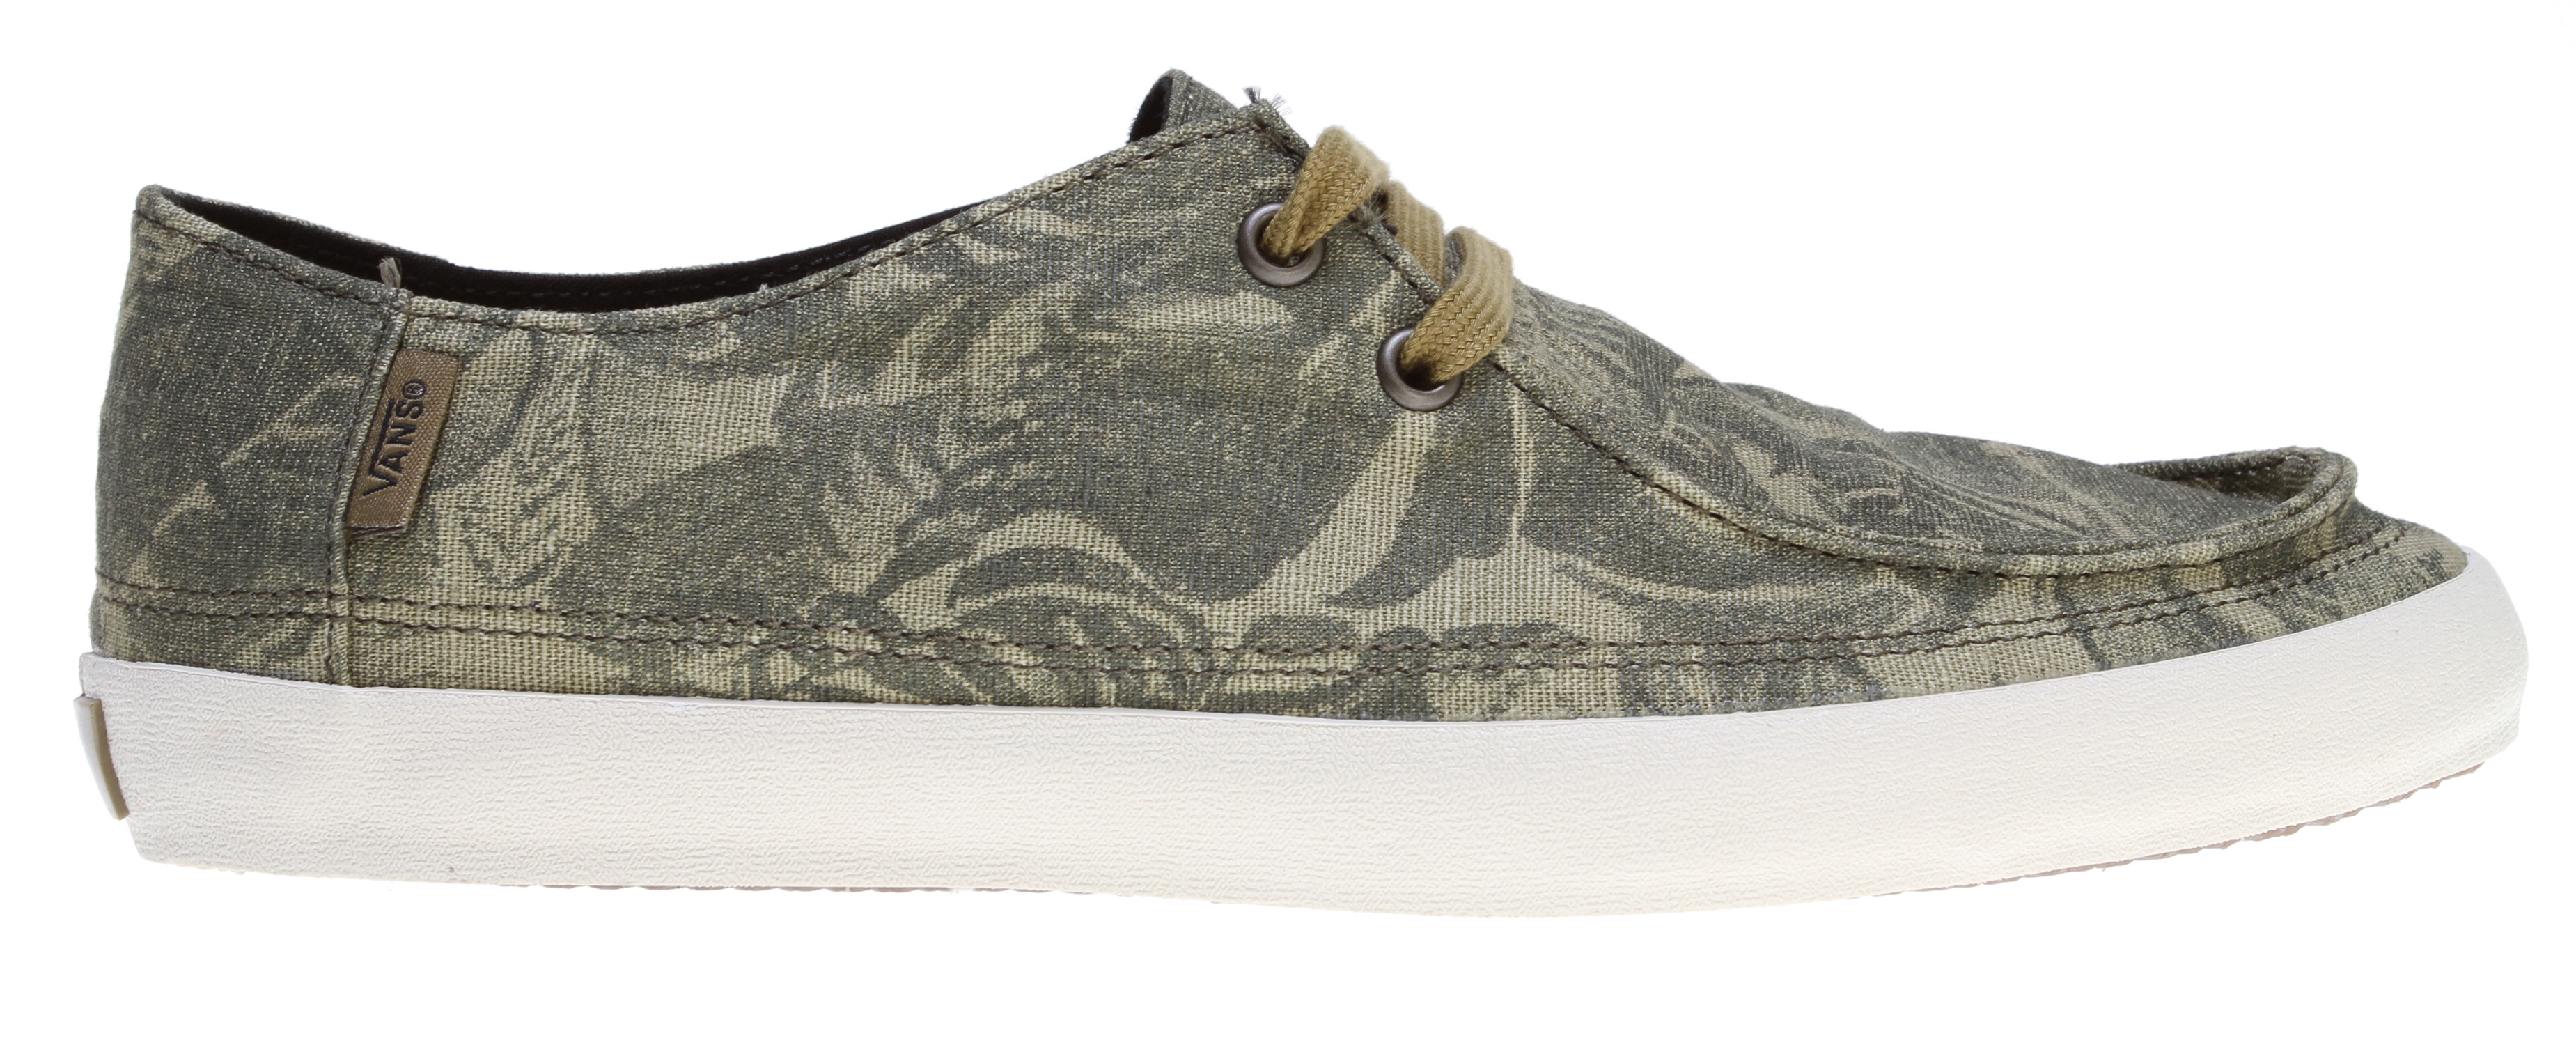 Skateboard Key Features of the Vans Rata Vulc Skate Shoes: Hemp, Recycled pet or canvas uppers Super comfy vanslite footbed Flexi vulc gum rubber outsole Water-based inks and glues Classic fit style - $29.95